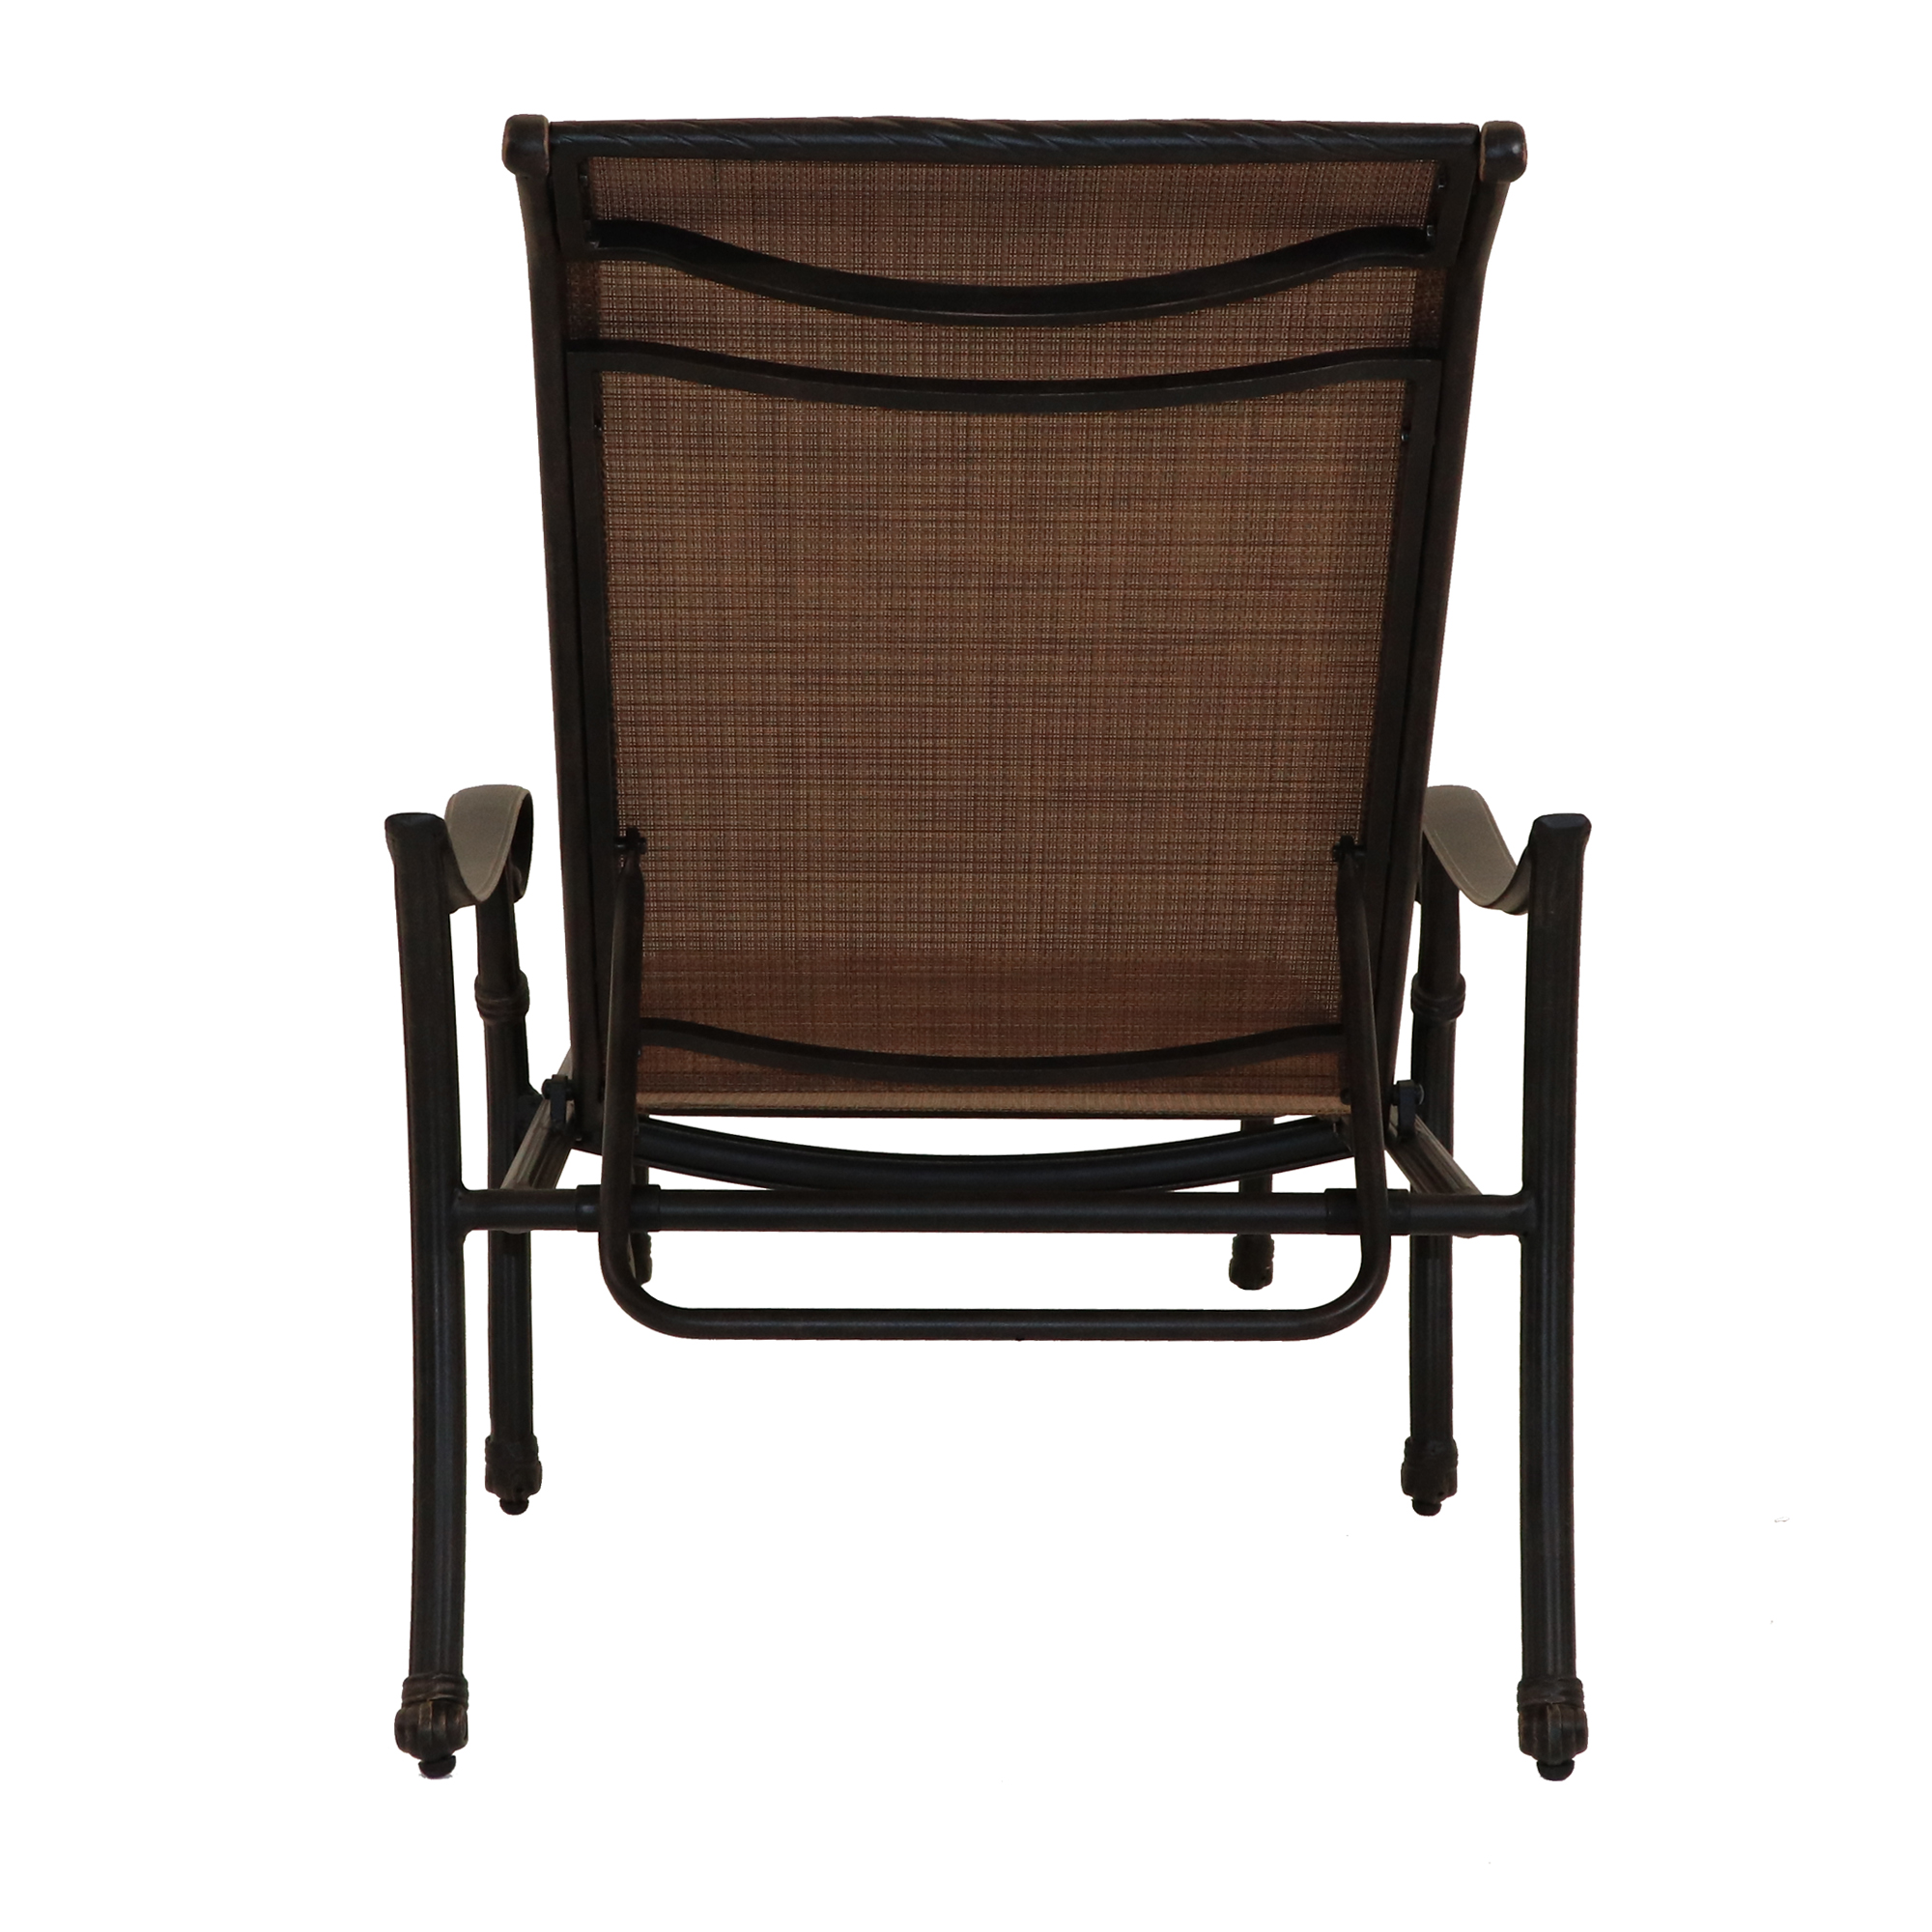 Sling Chaise Lounge Chair Castle Rock Sling Chaise Lounge Patio Furniture At Sun